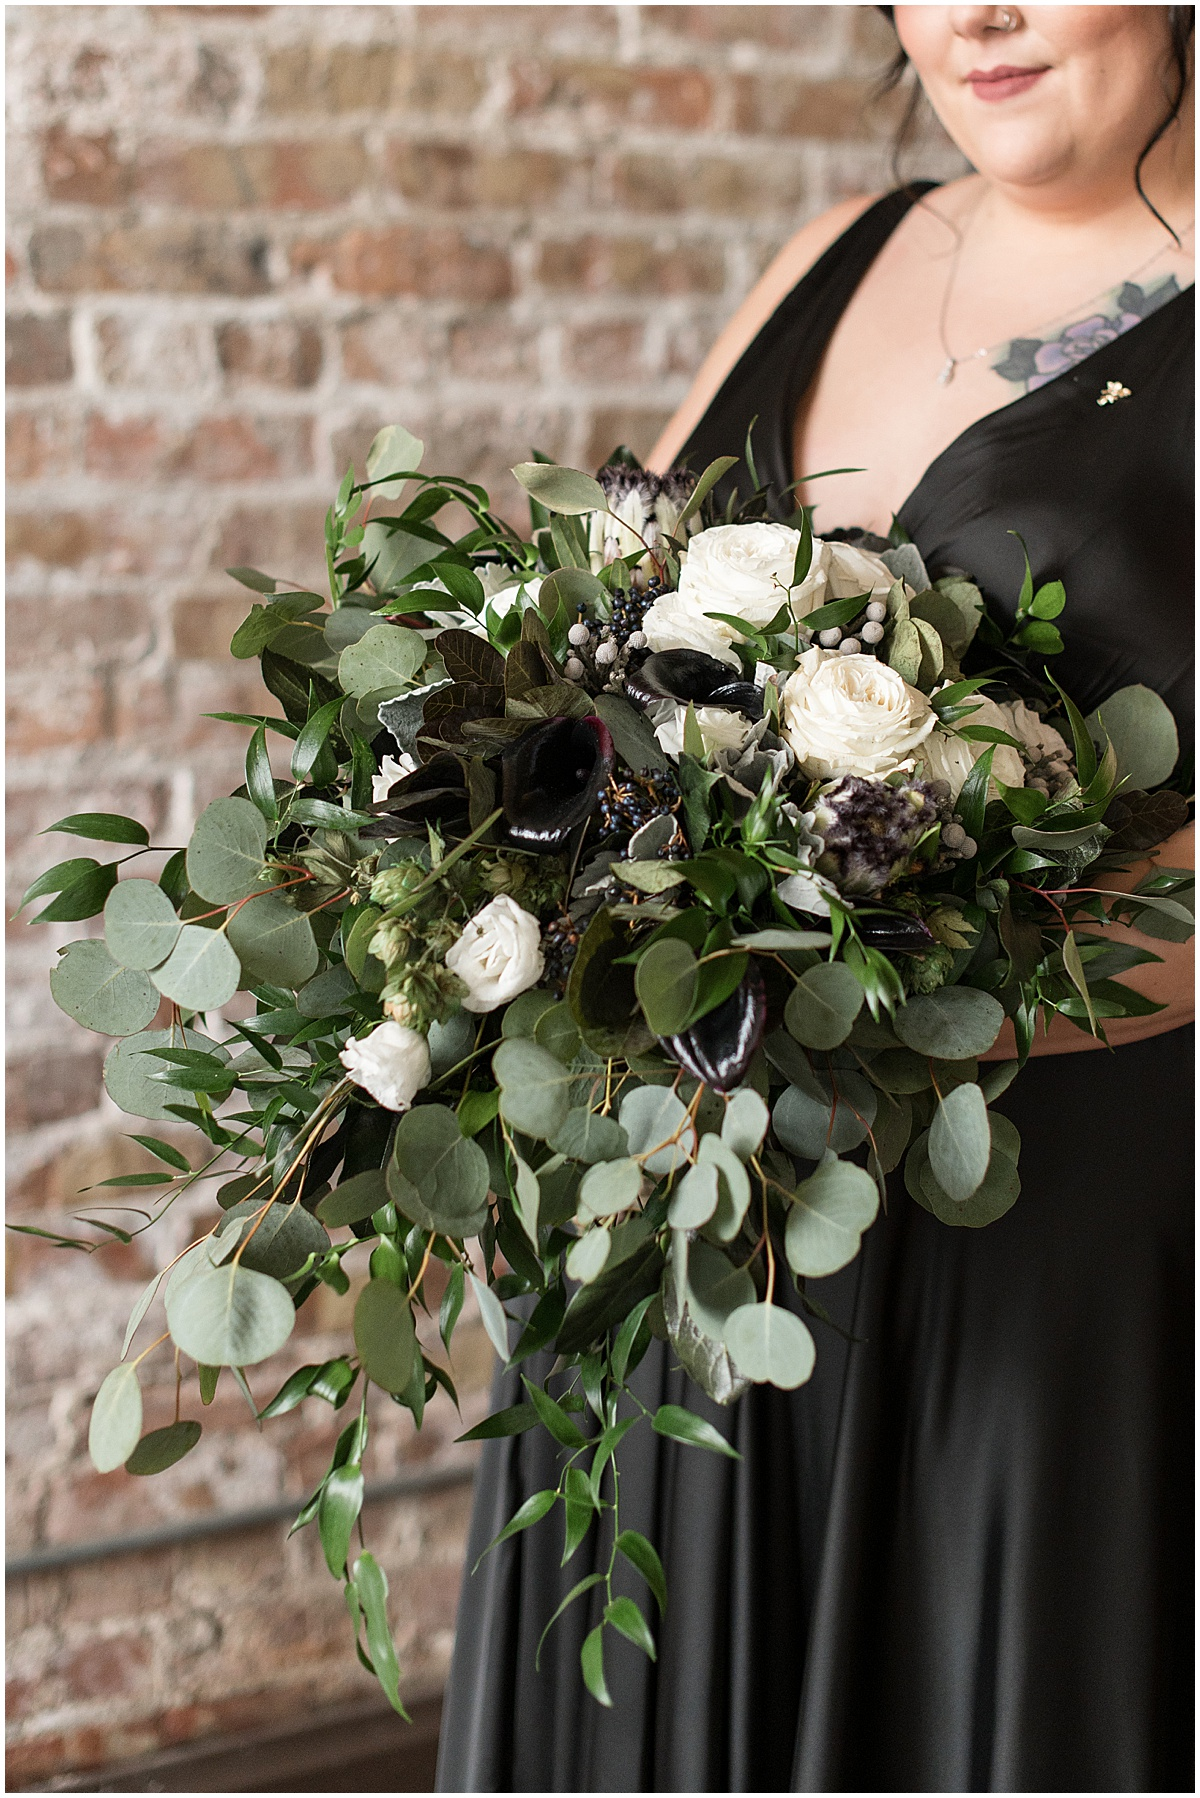 Bridal bouquet for eMbers Venue wedding in Rensselaer, Indiana